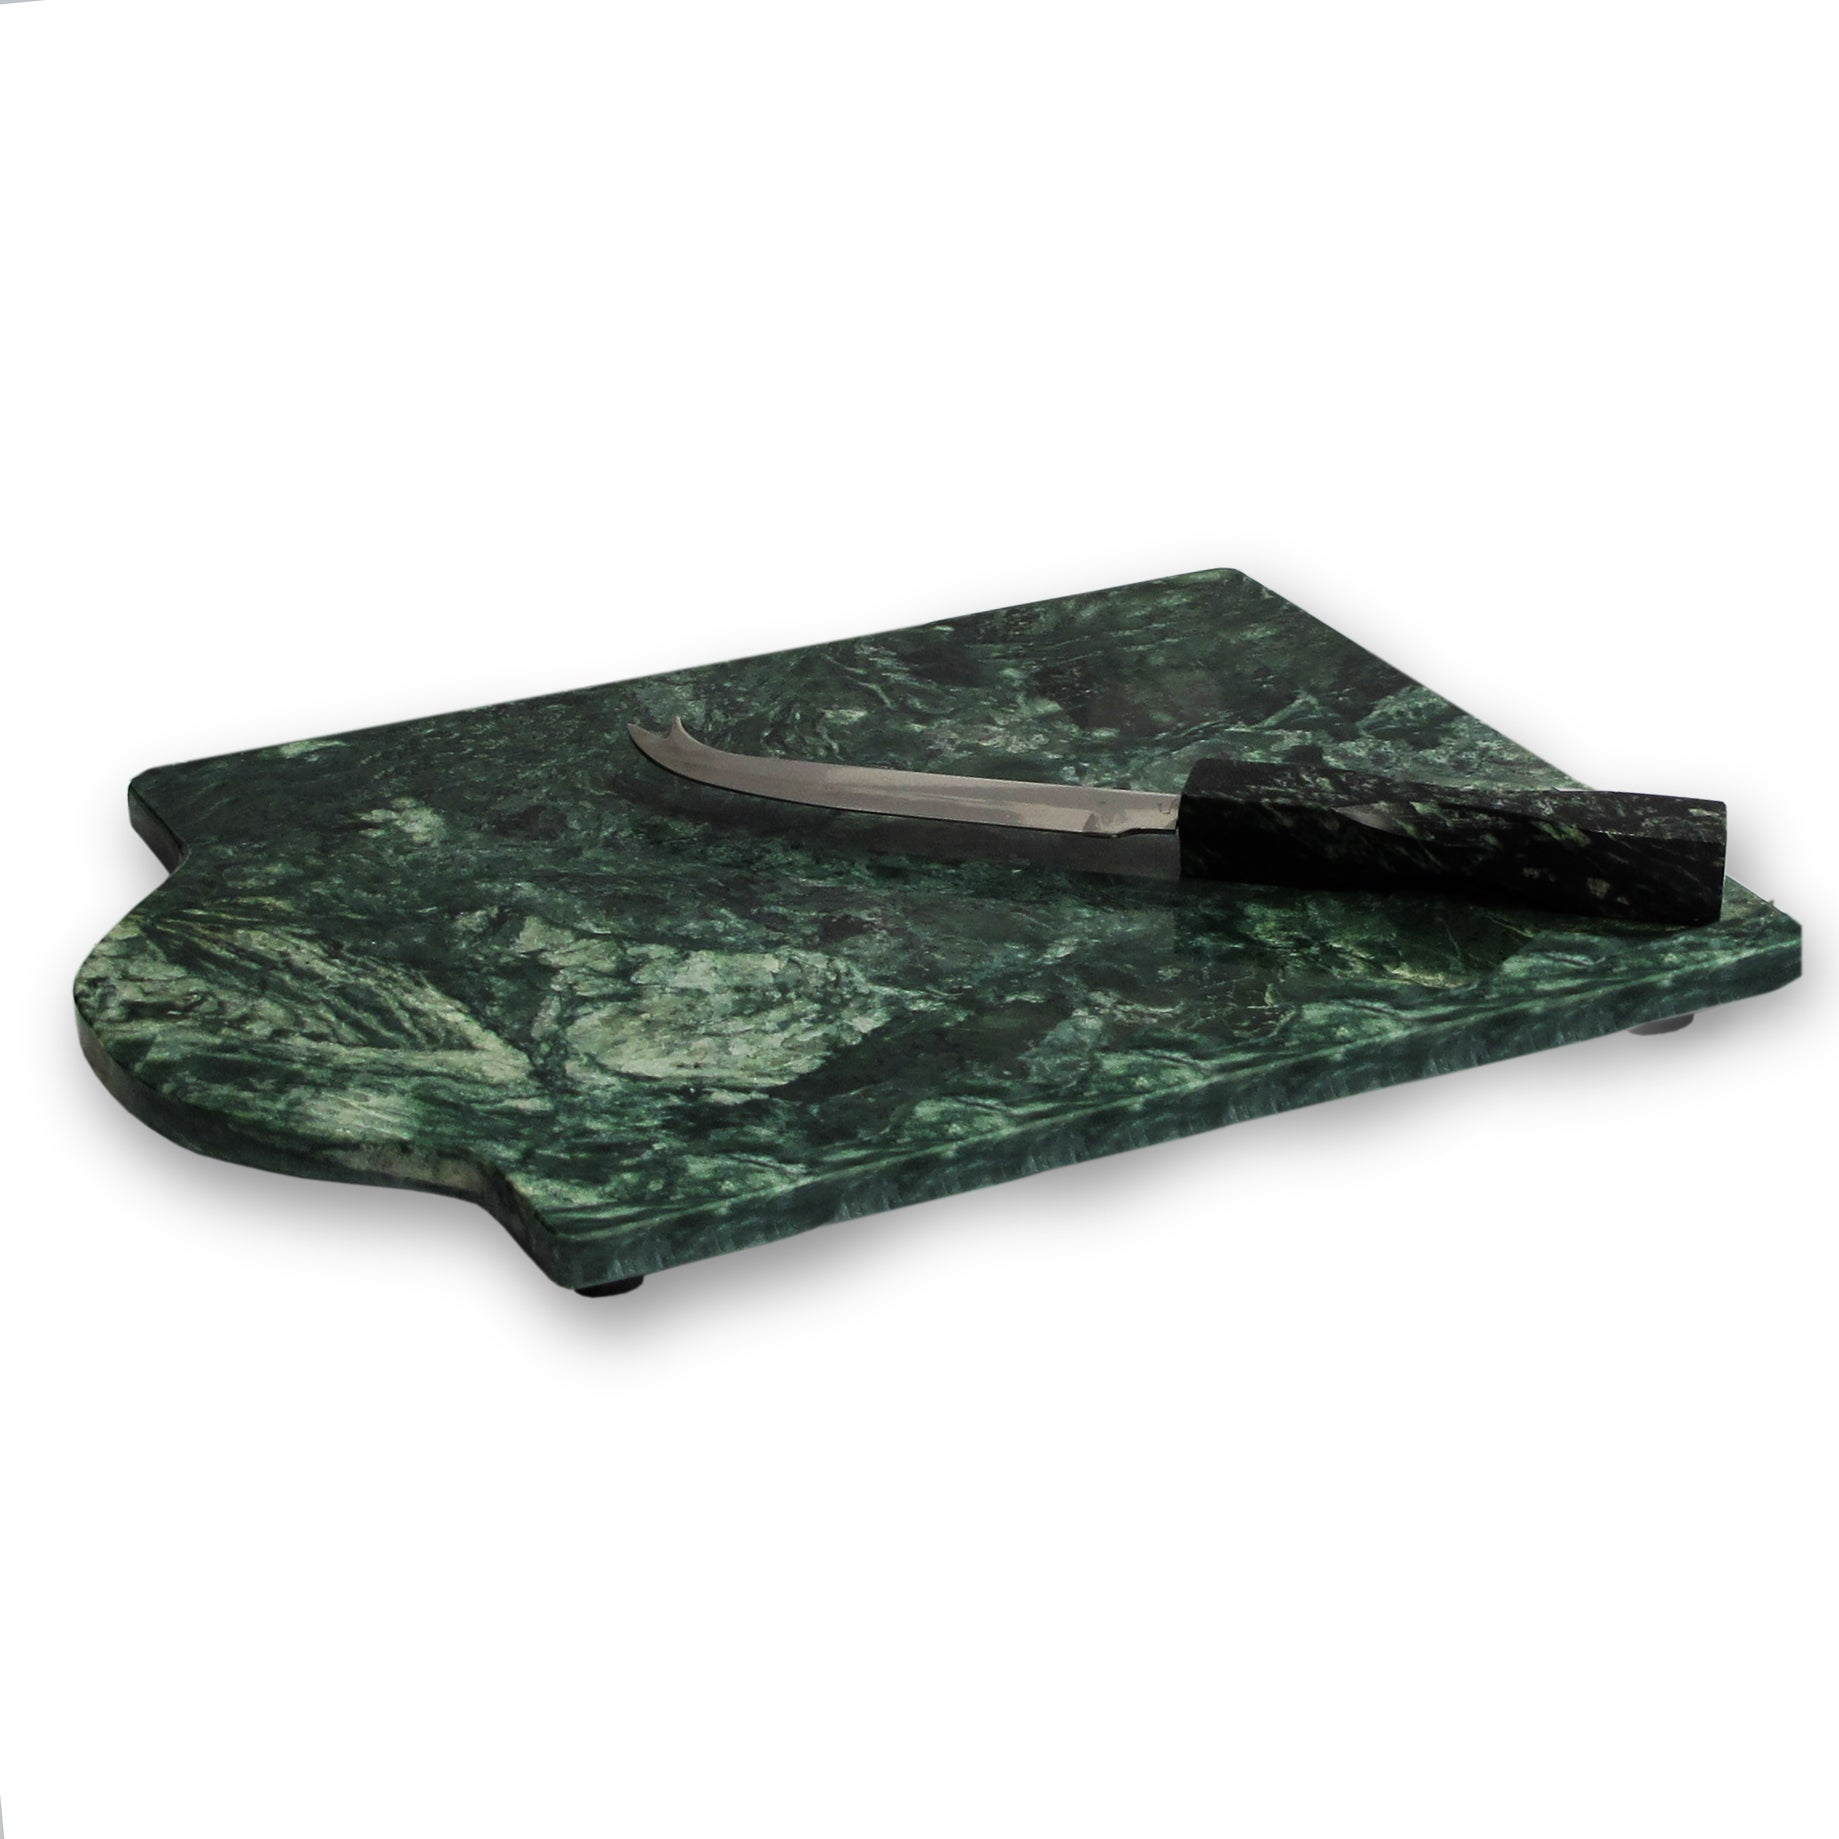 American Atelier Green Marble Cutting Board With Knife Free Shipping On Orders Over 45 7832043